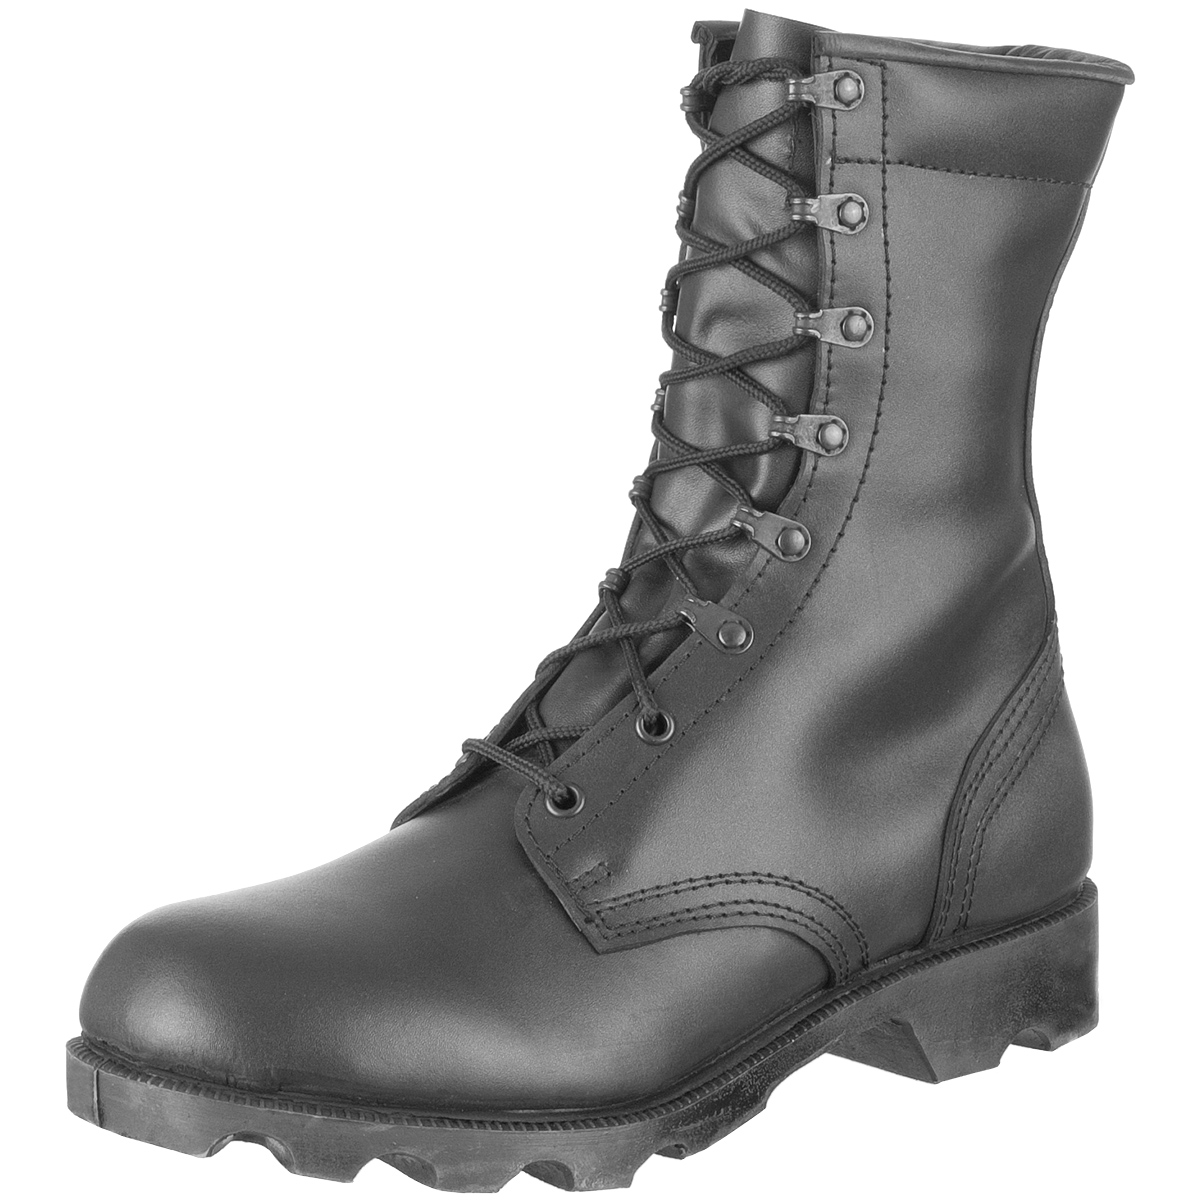 1,061 black leather army boots stock images are available royalty-free.